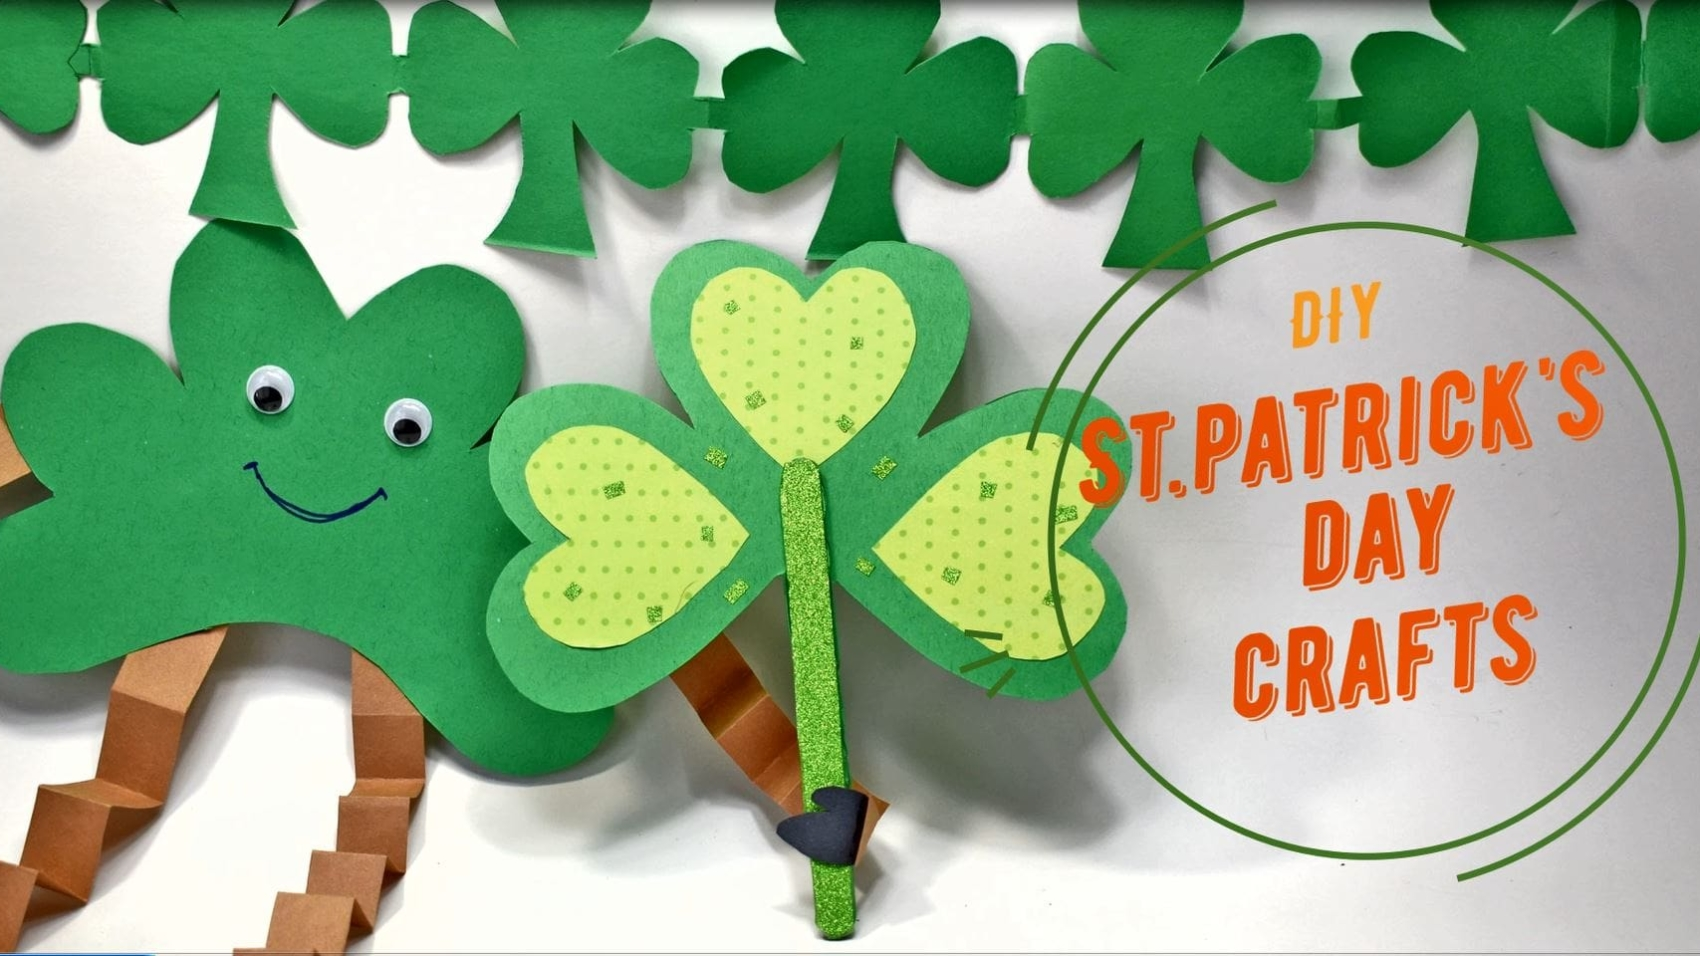 Shamrock crafts for ST.Patrick's Day